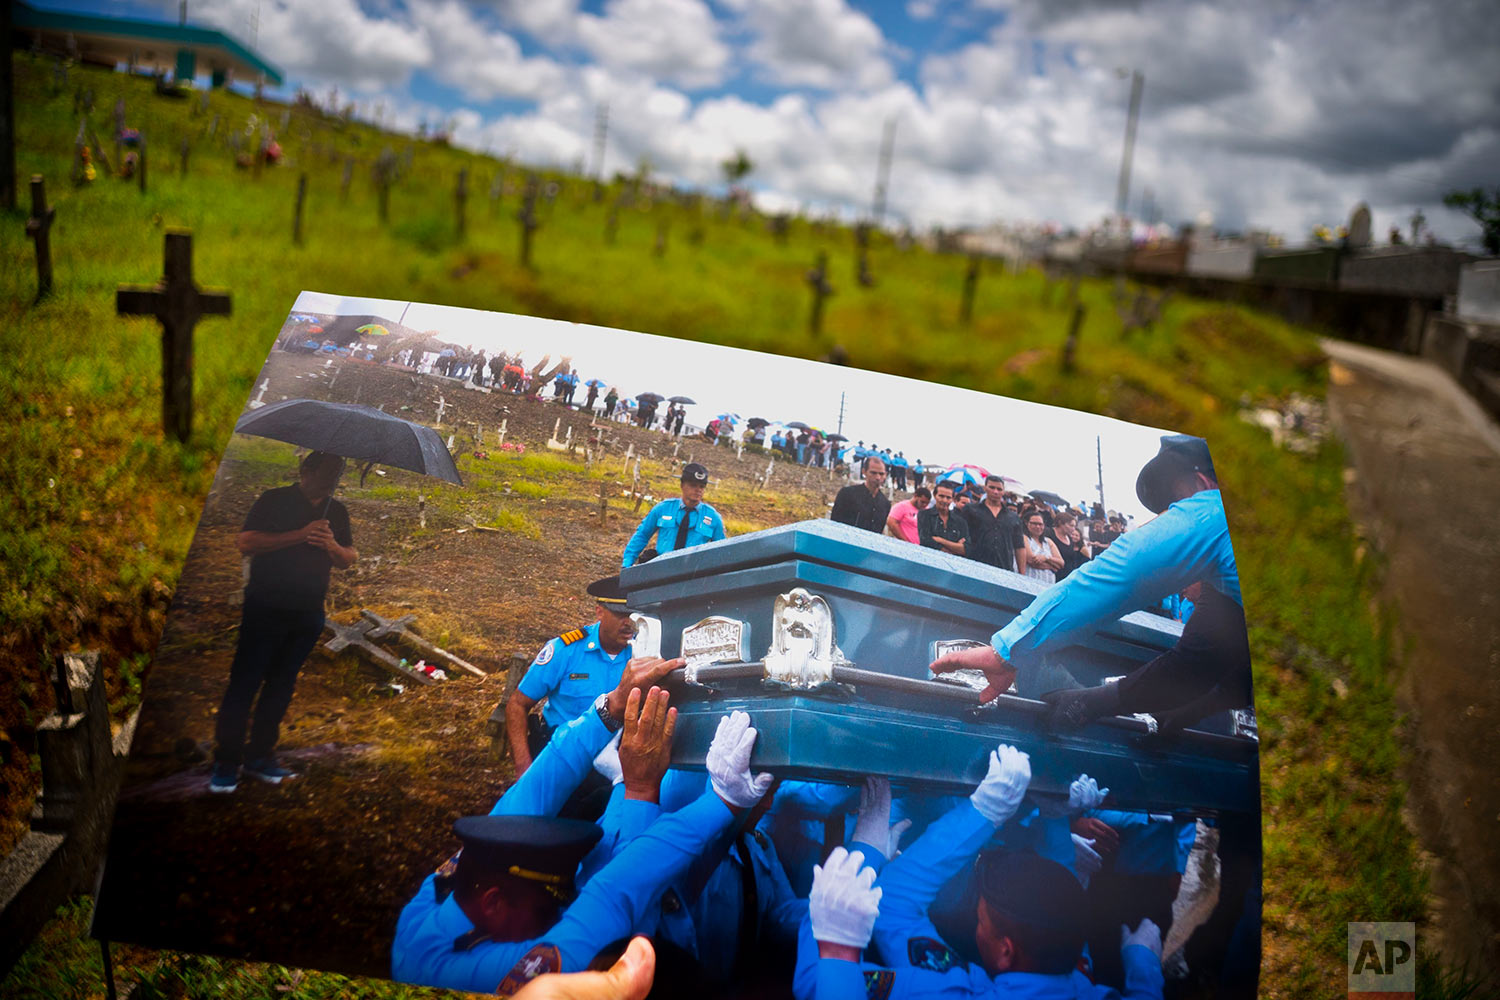 A printed photo taken on Sept. 29, 2017 showing police lifting the coffin of officer Luis Angel Gonzalez Lorenzo, is shown at the same cemetery in Aguada, Puerto Rico, May 31, 2018. (AP Photo/Ramon Espinosa)